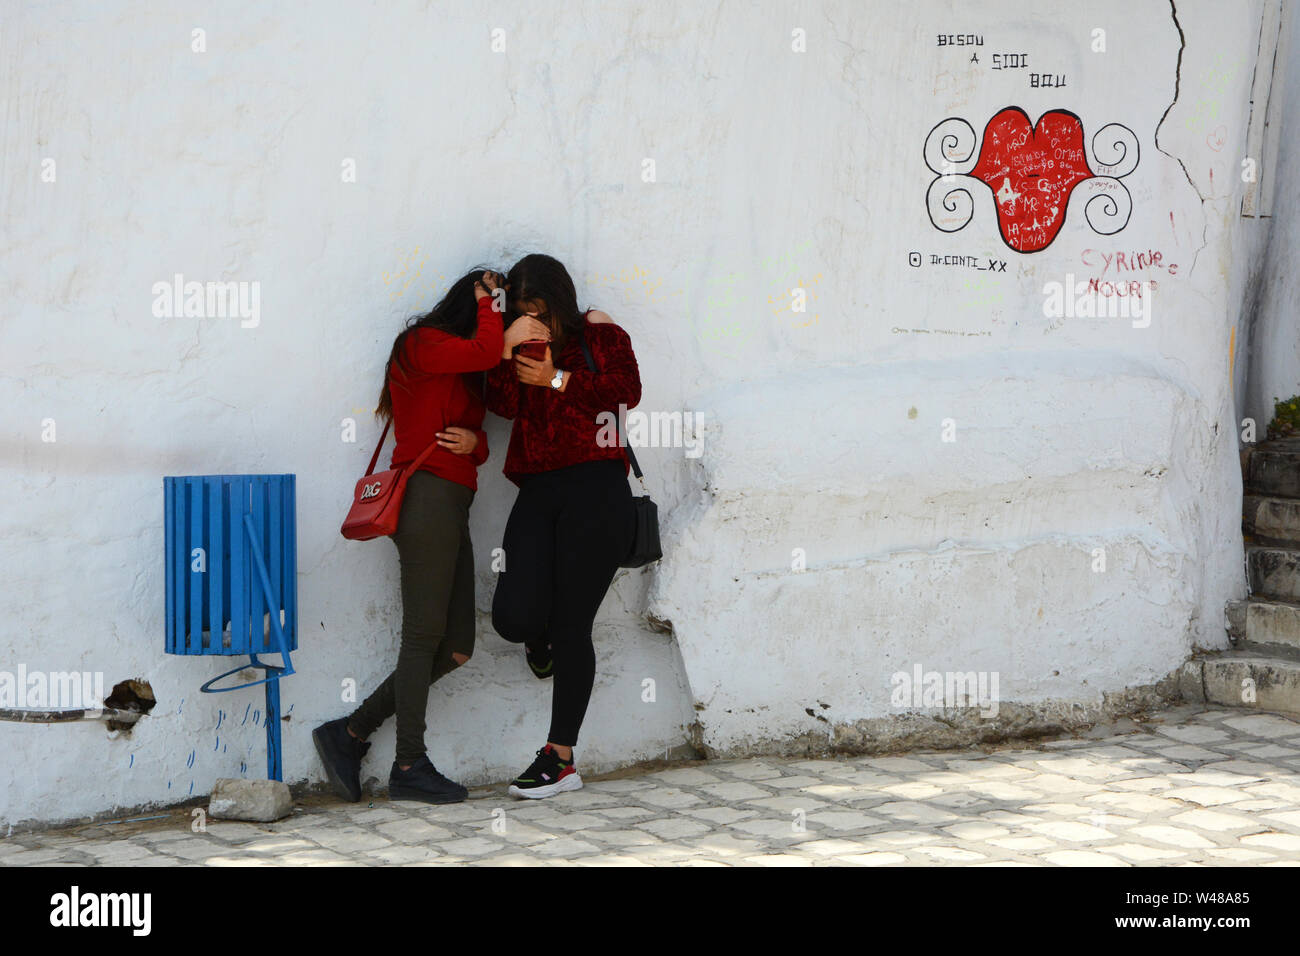 Two Tunisian female teens gaze at a cellphone in the shade of alley in the pedestrian zone in the tourist town of Sidi Bou Said, near Tunis, Tunisia. Stock Photo